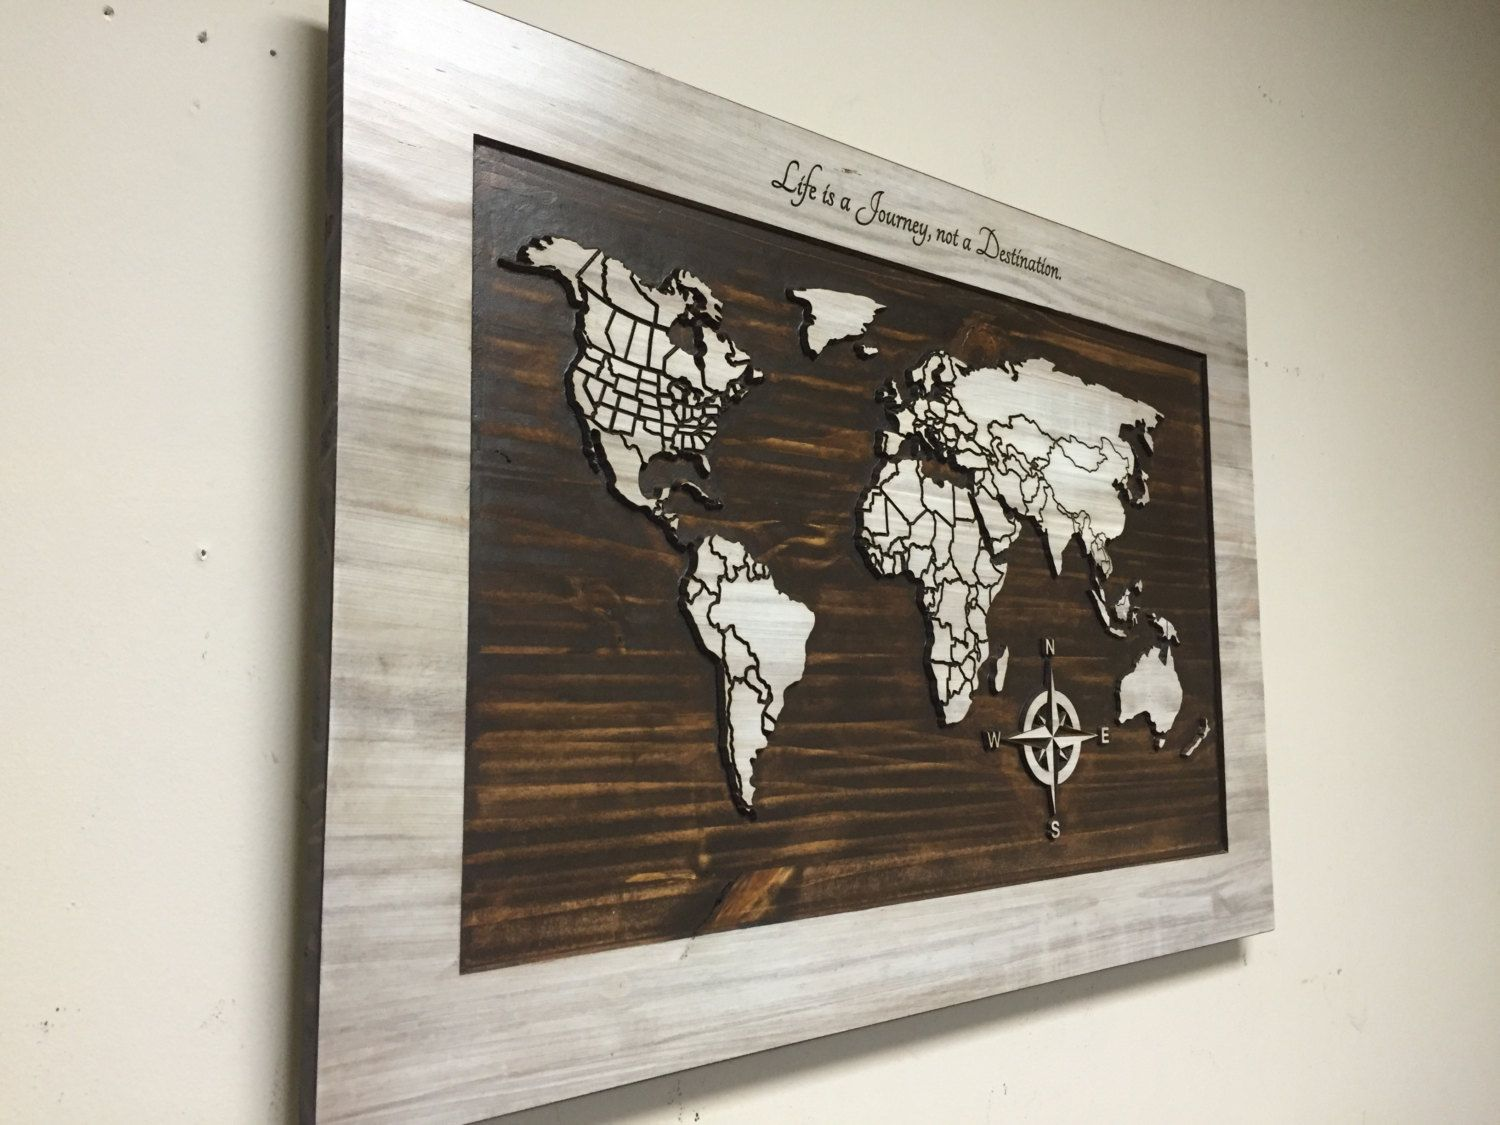 Wood wall art carved world map home decor wooden 3 panel life wood wall art carved world map home decor wooden 3 panel gumiabroncs Choice Image